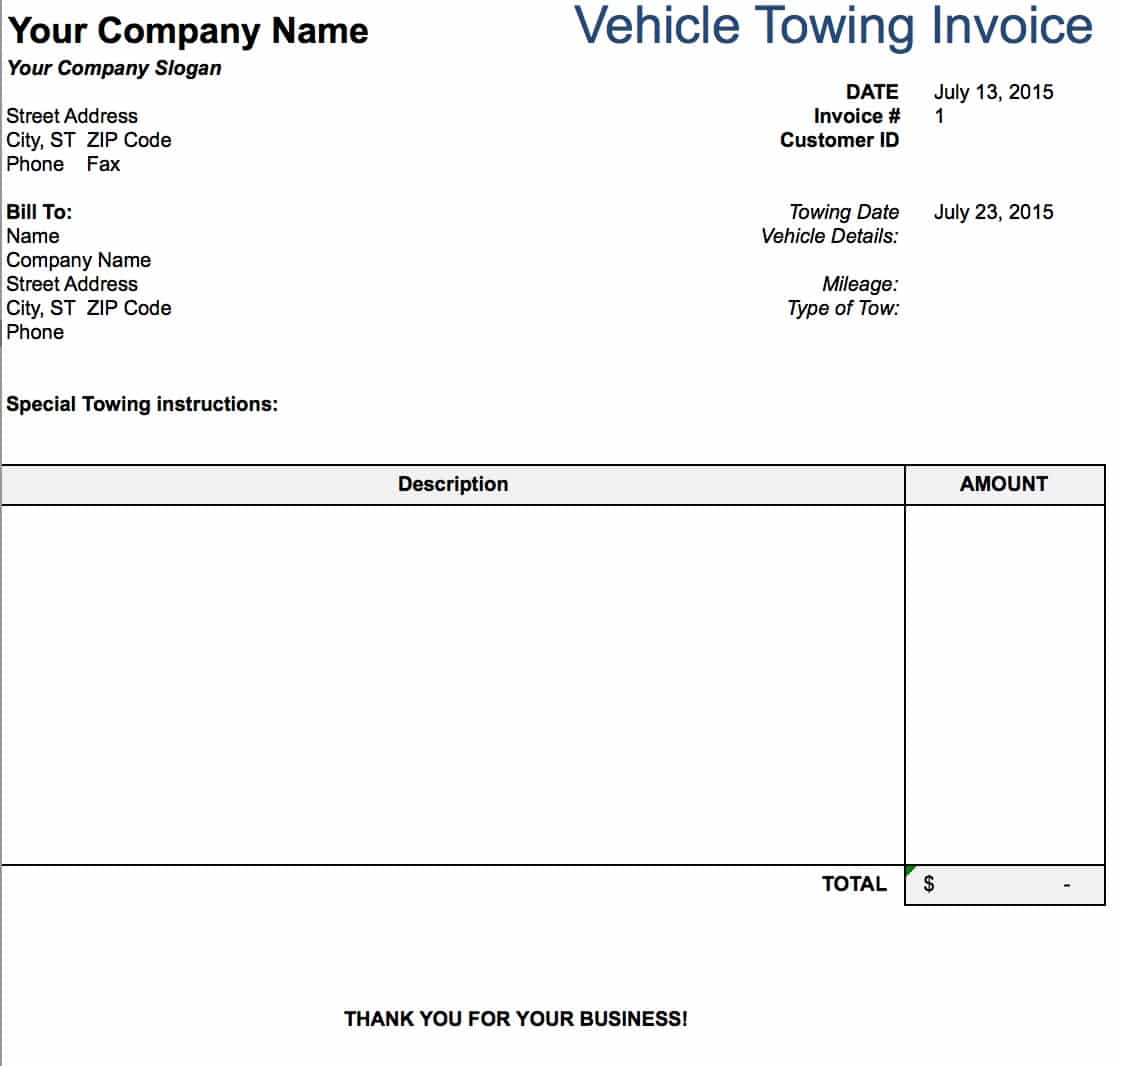 Free Tow Service Invoice Template Excel PDF Word Doc - Microsoft word templates invoice for service business